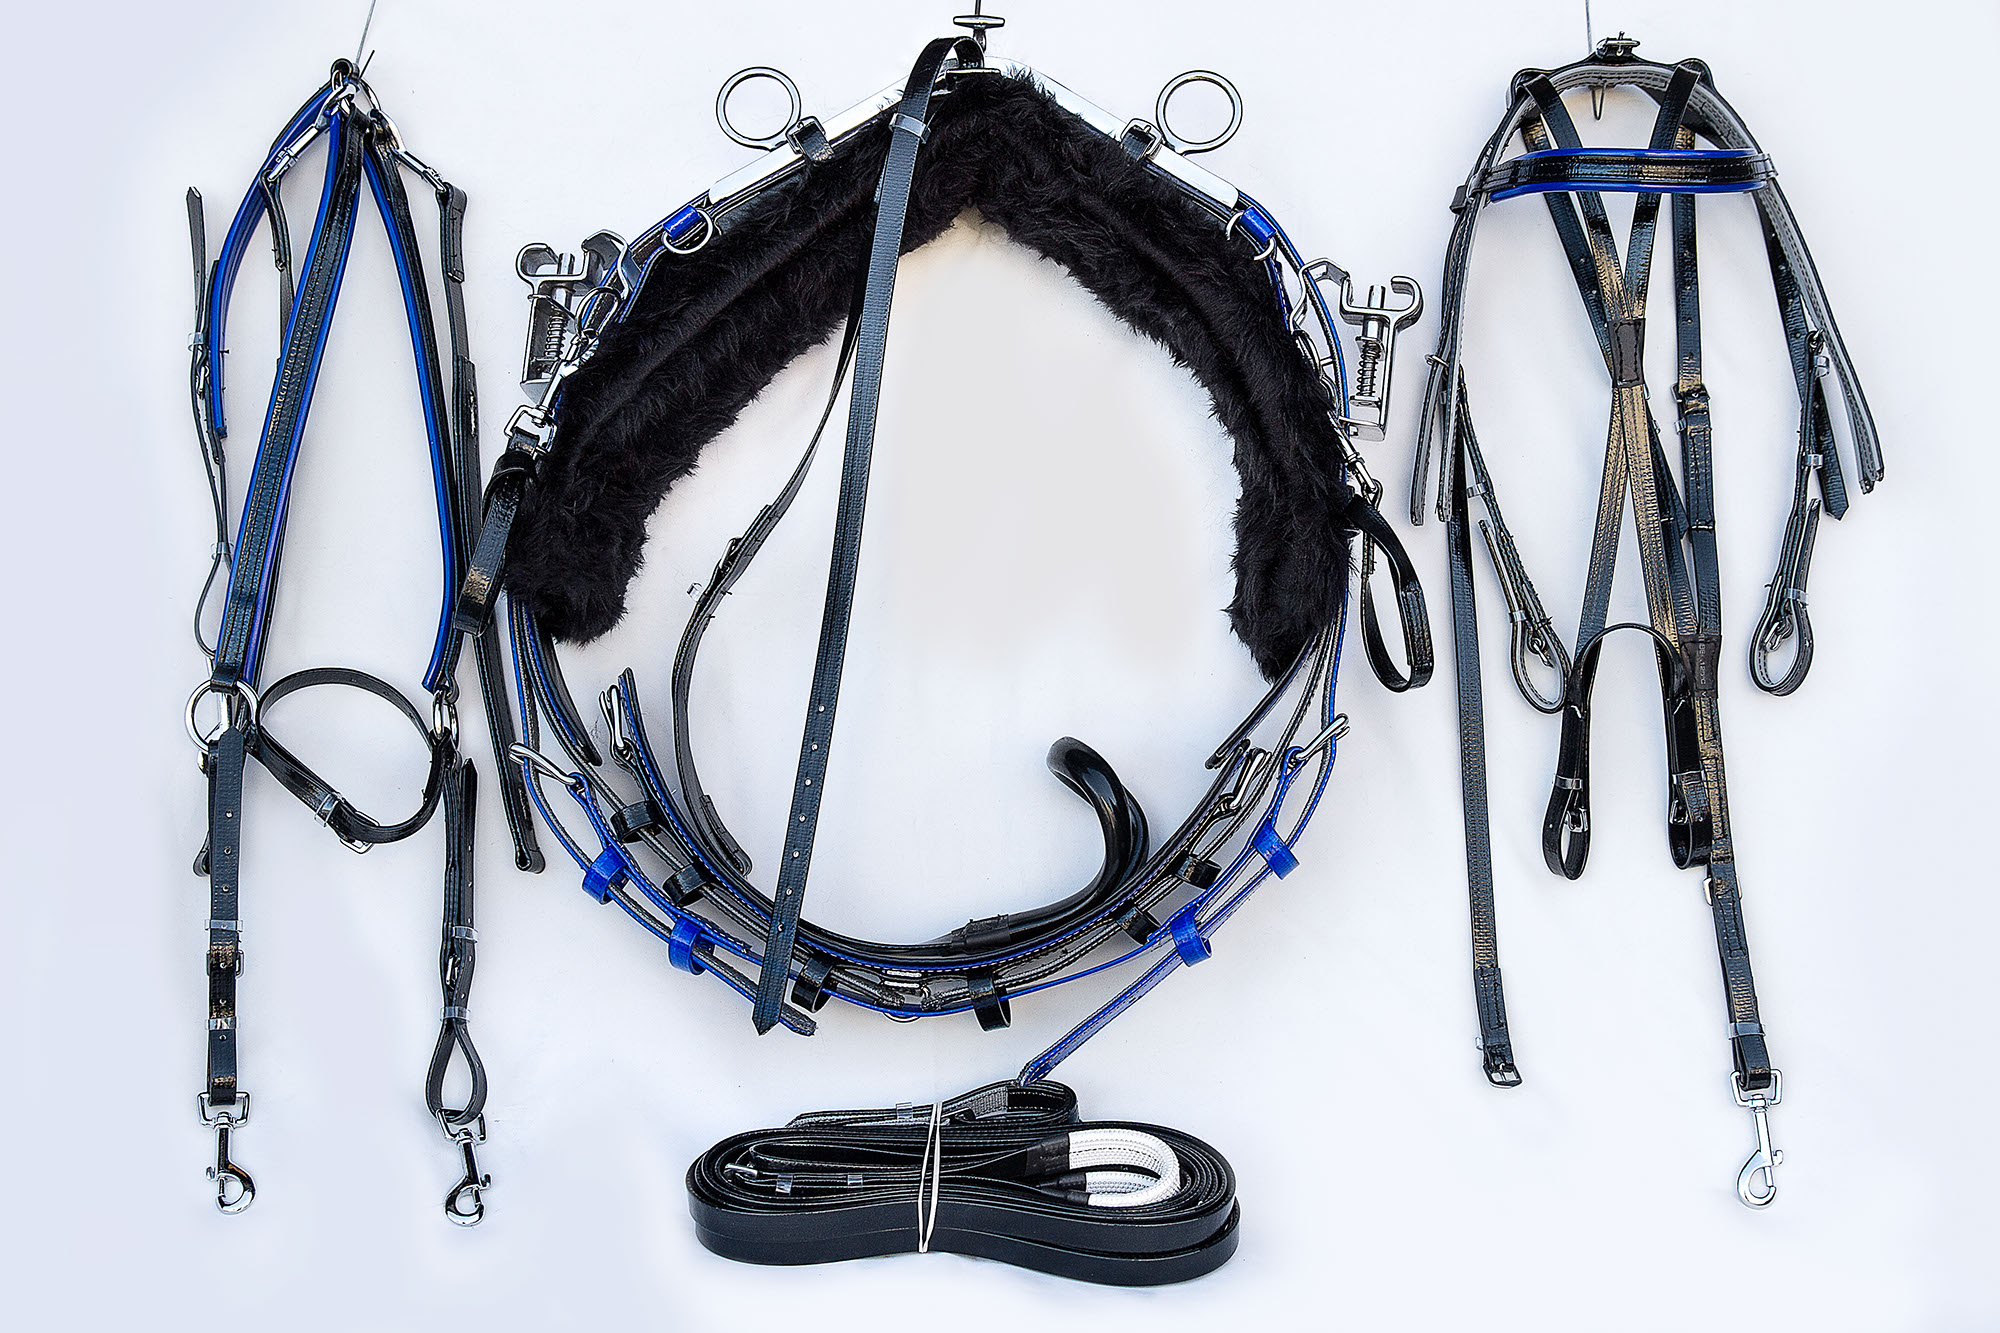 Harness-QH-Black-Blue 01.jpg